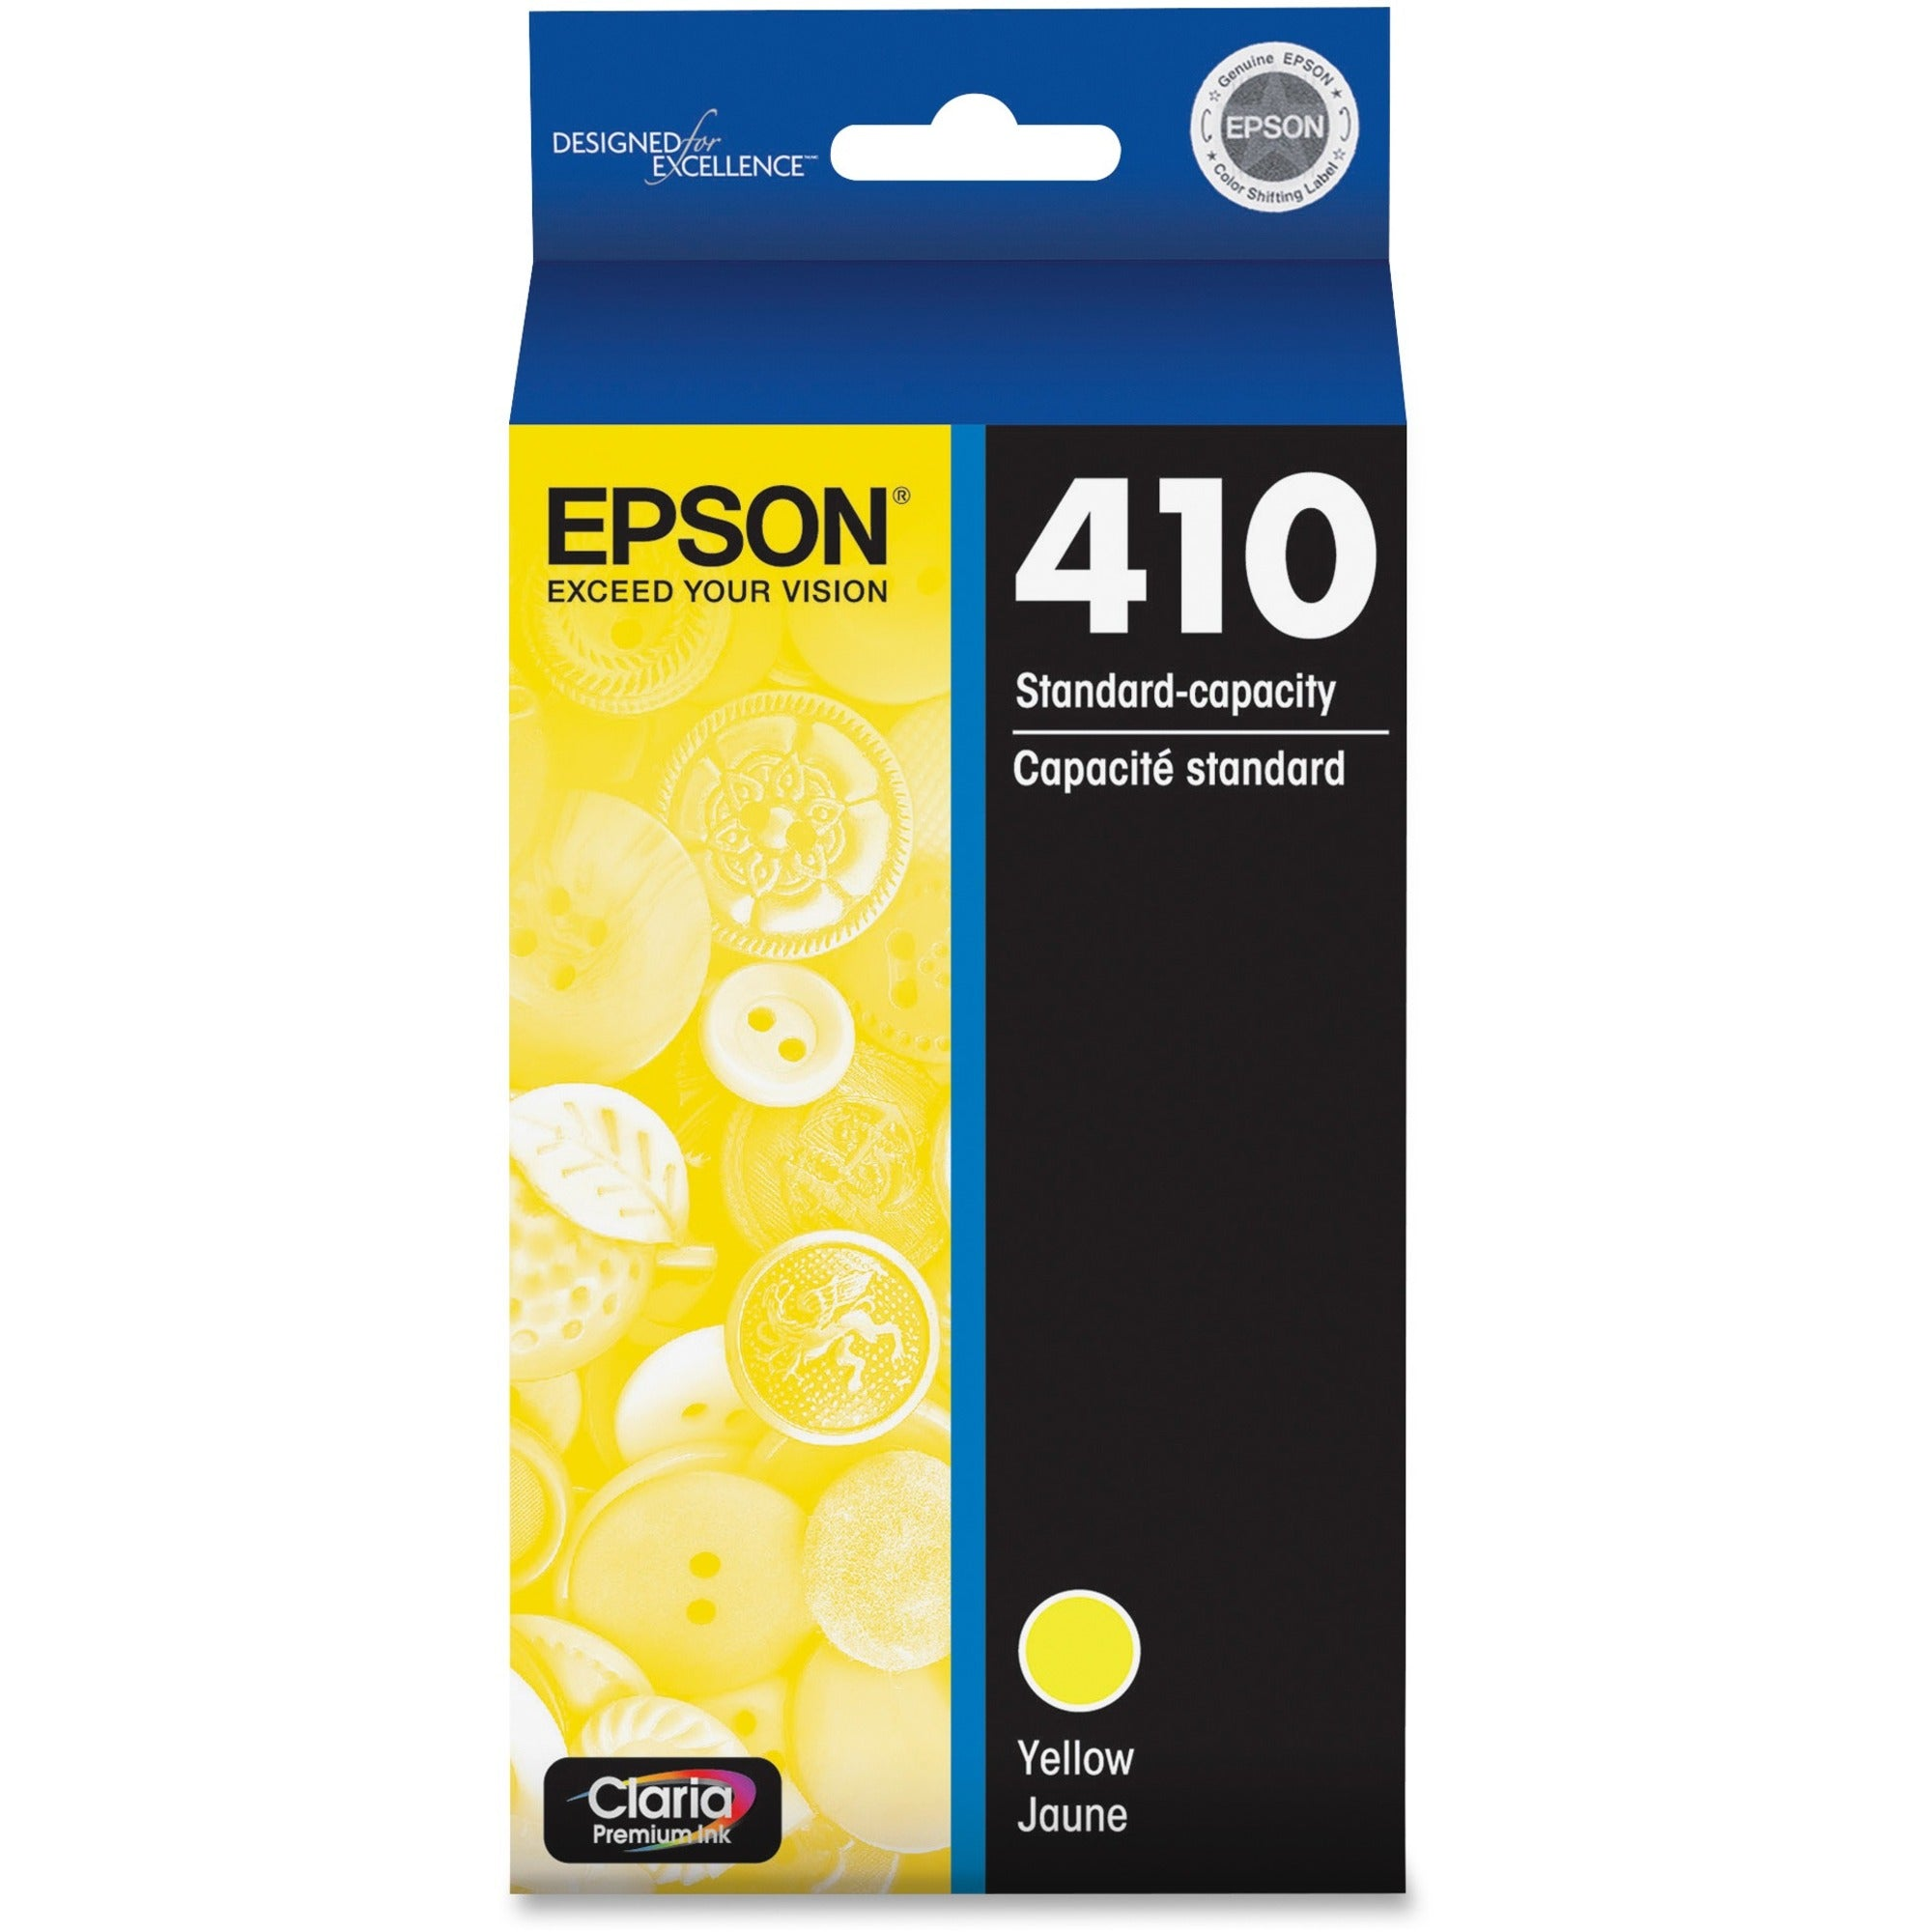 Epson Claria 410 Original Ink Cartridge - Yellow